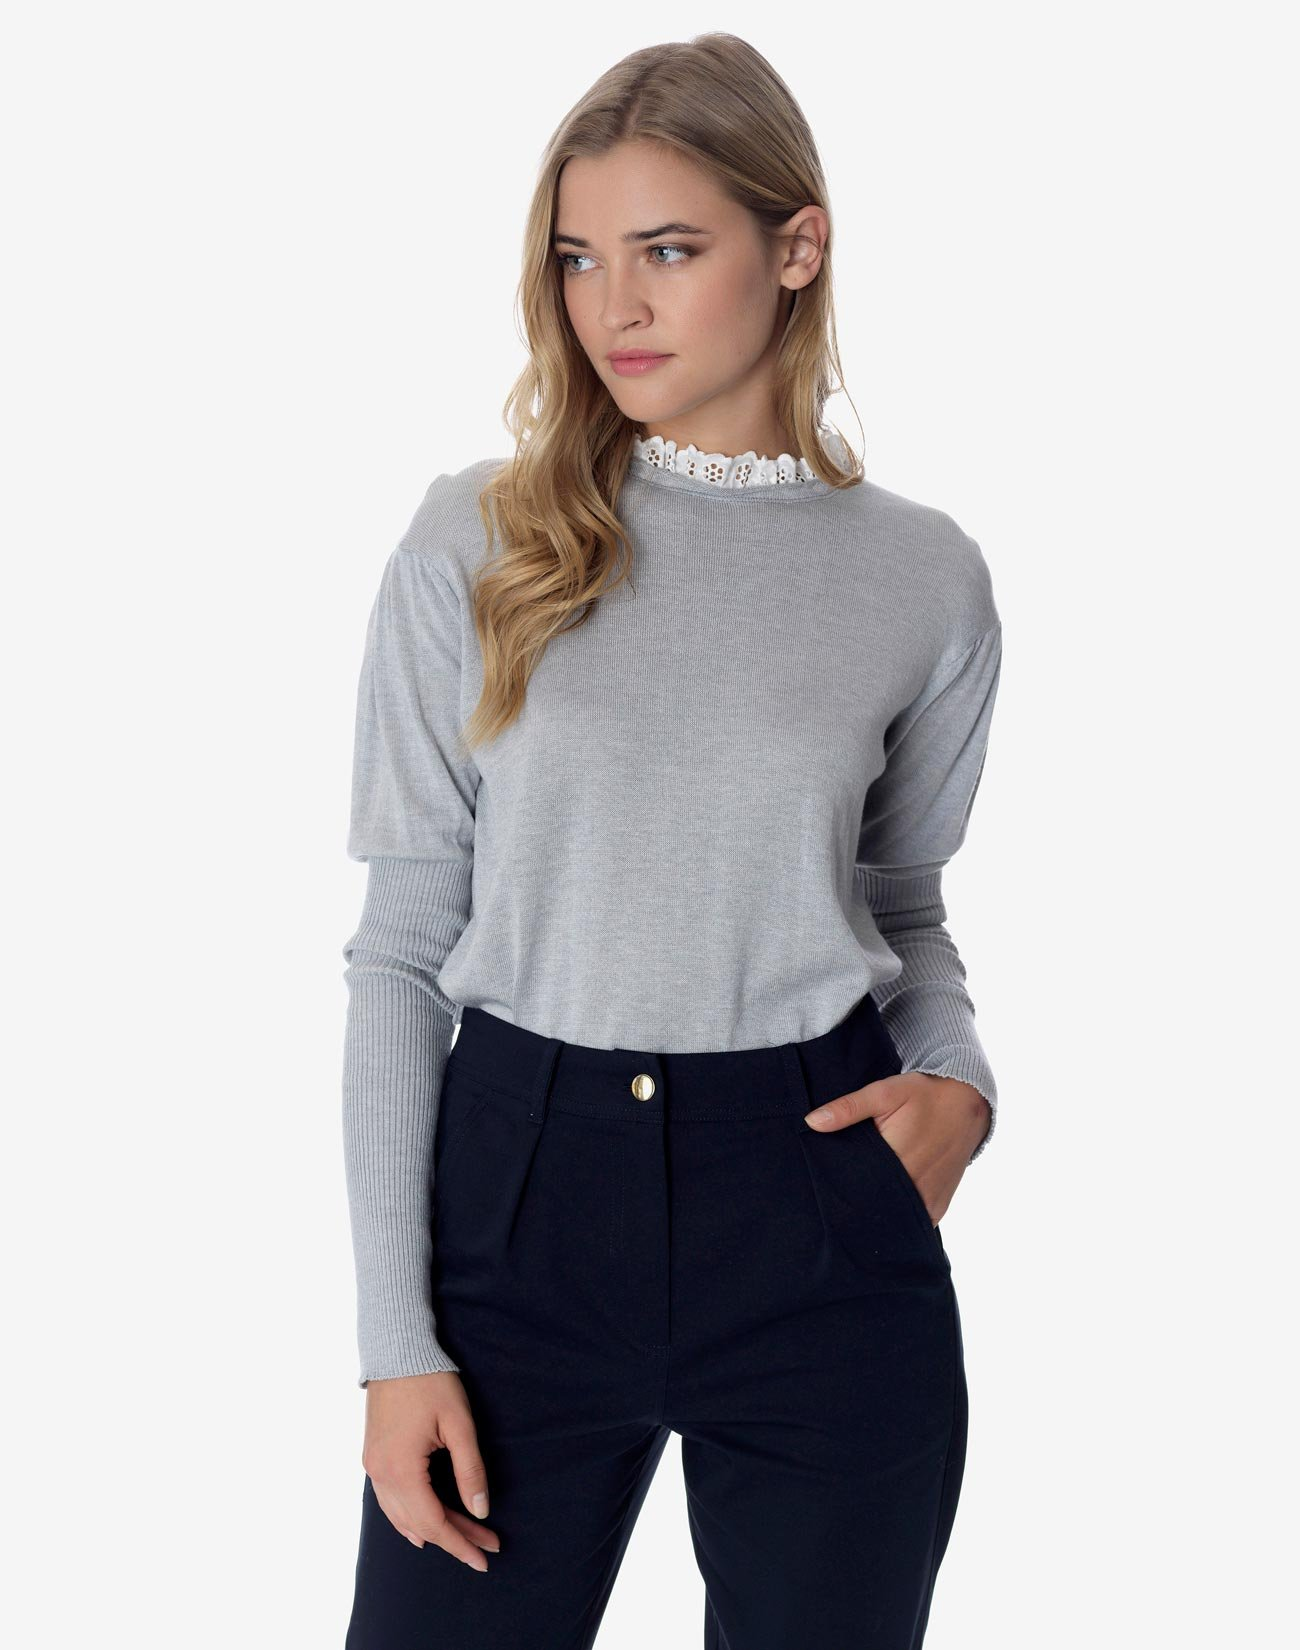 Top with high broderie anglaise collar